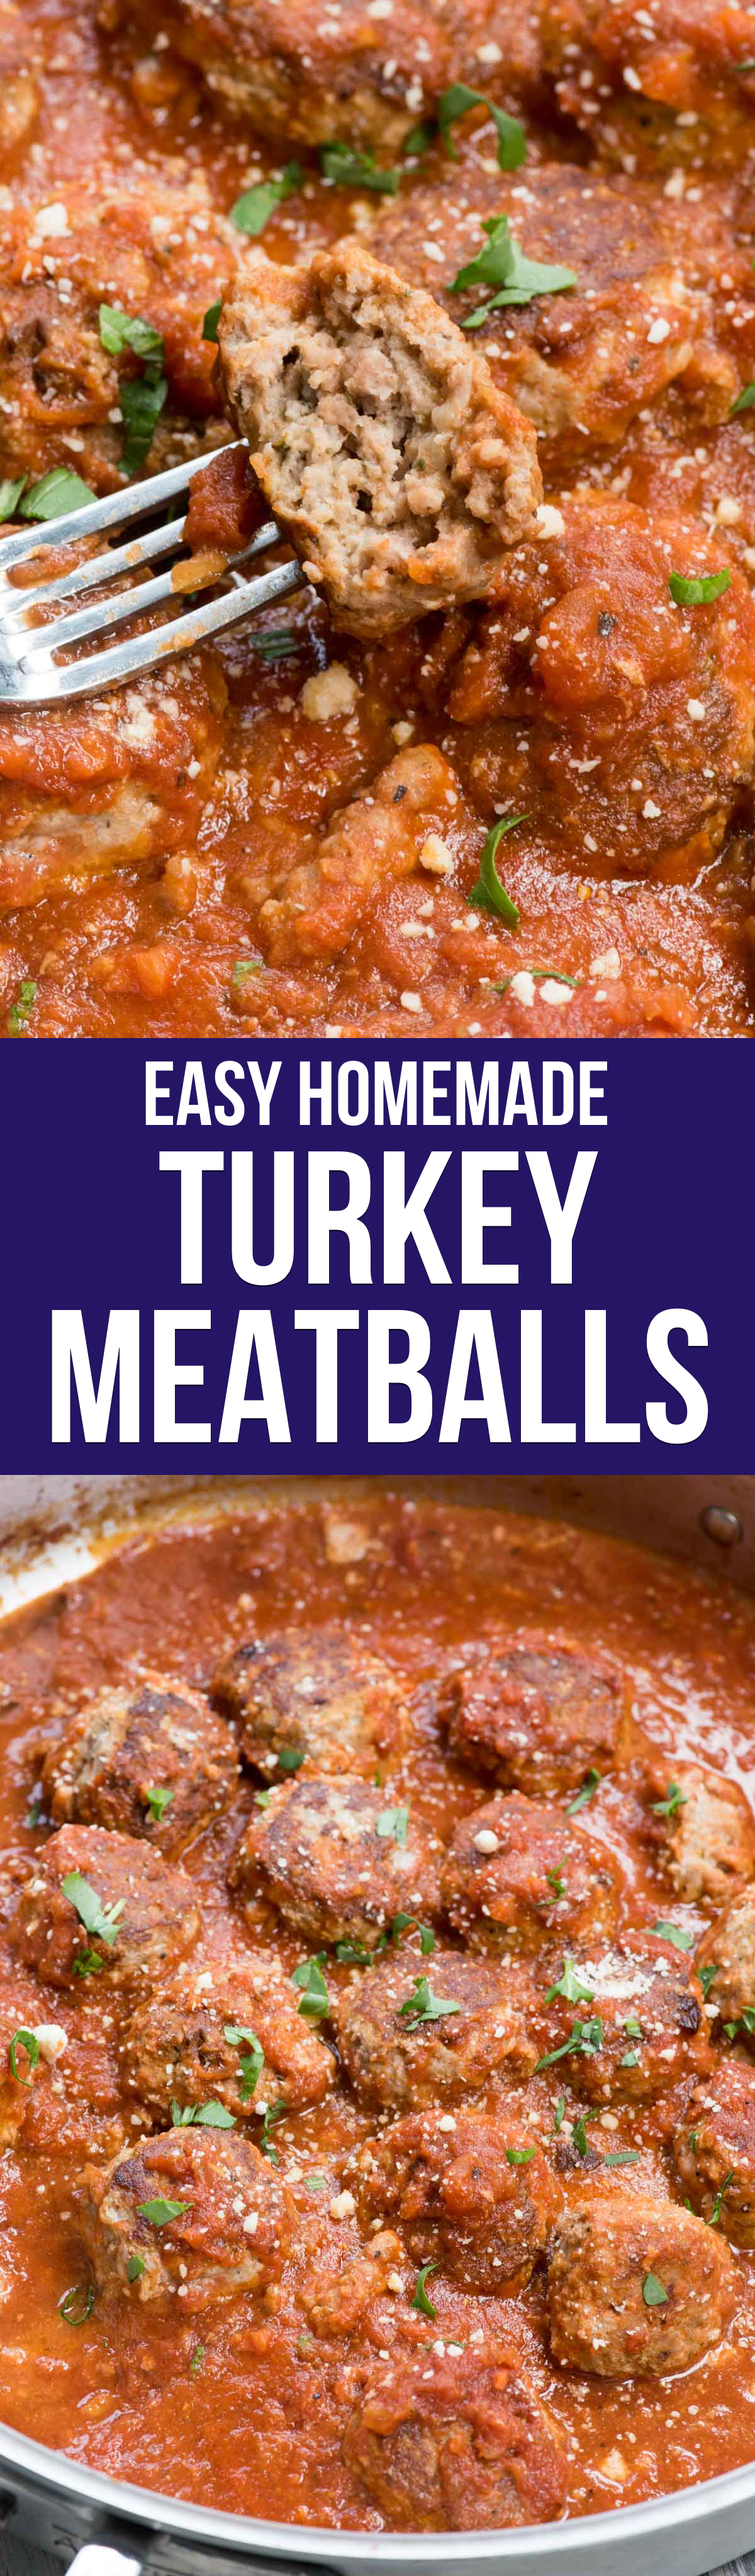 These are the BEST Turkey Meatballs ever! An easy homemade meatball recipe, they're always juicy and taste great in sauce or baked!